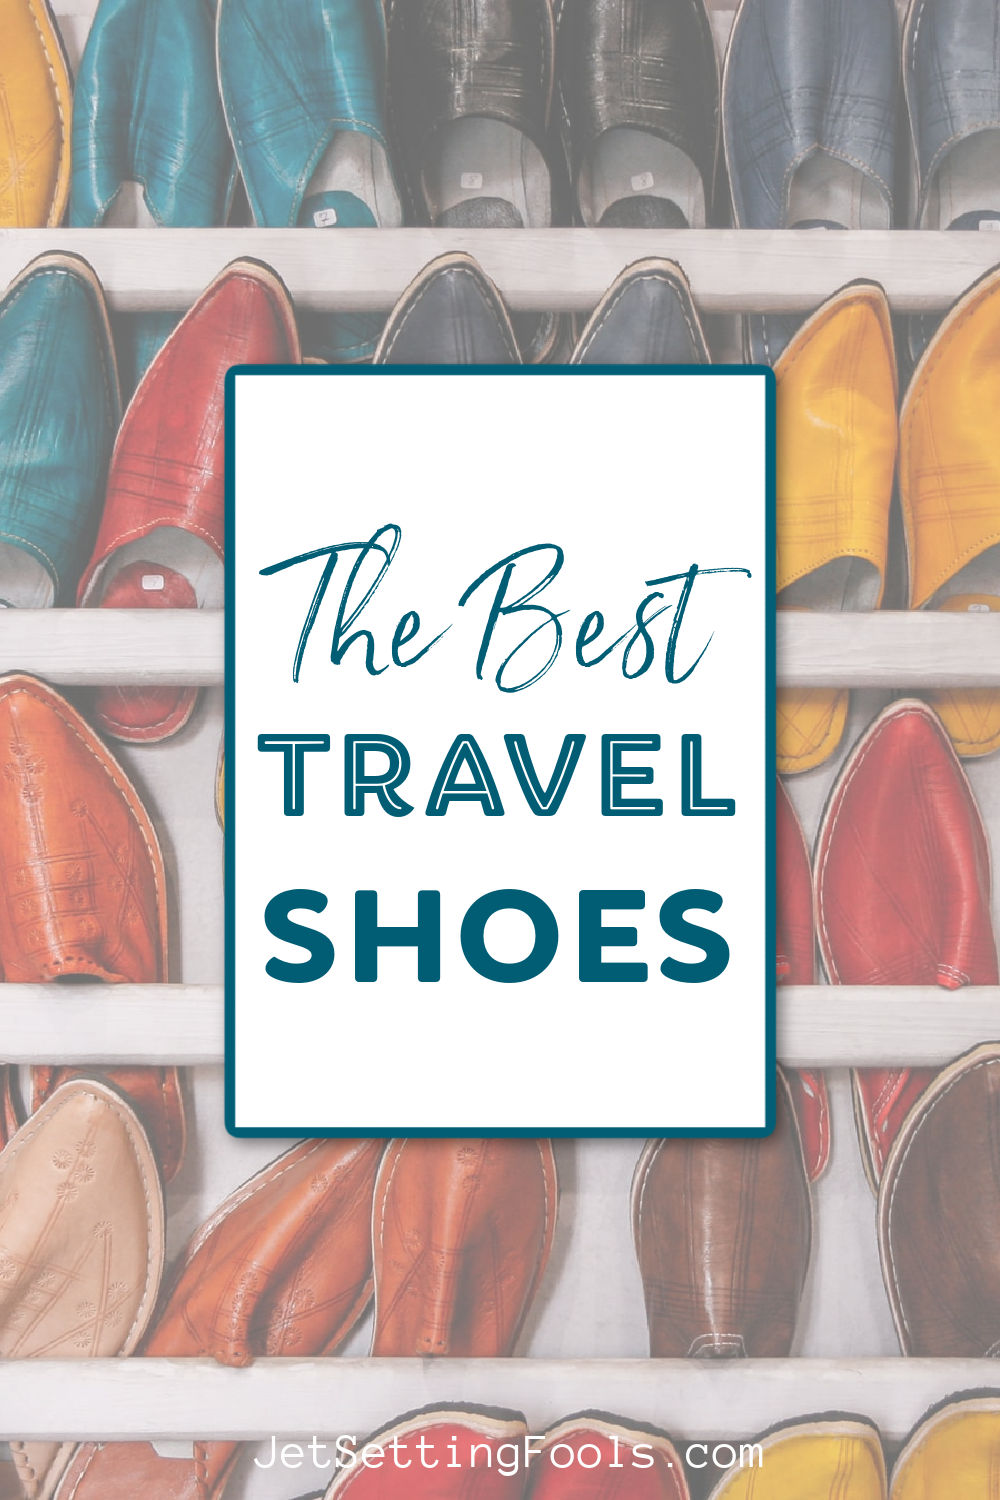 The Best Travel Shoes by JetSettingFools.com